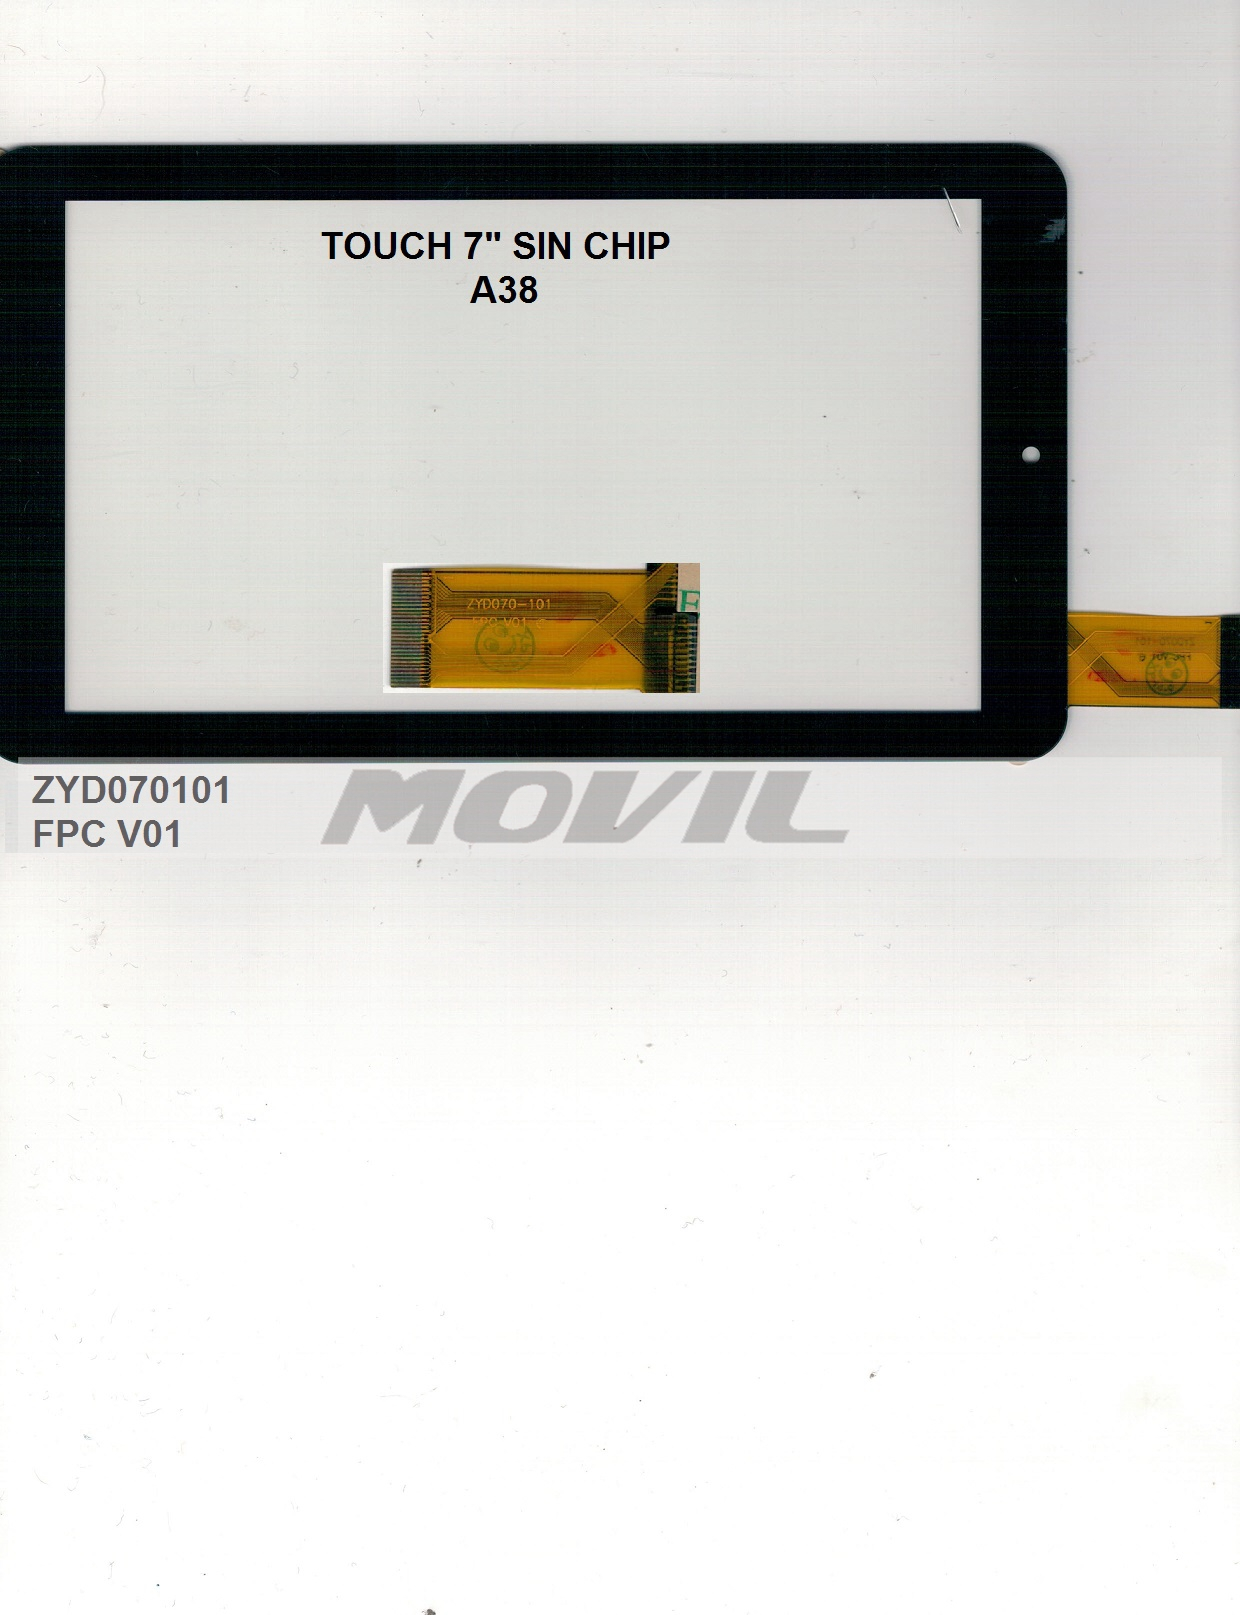 Touch tactil para tablet flex 7 inch SIN CHIP A38 ZYD070101 FPC V01